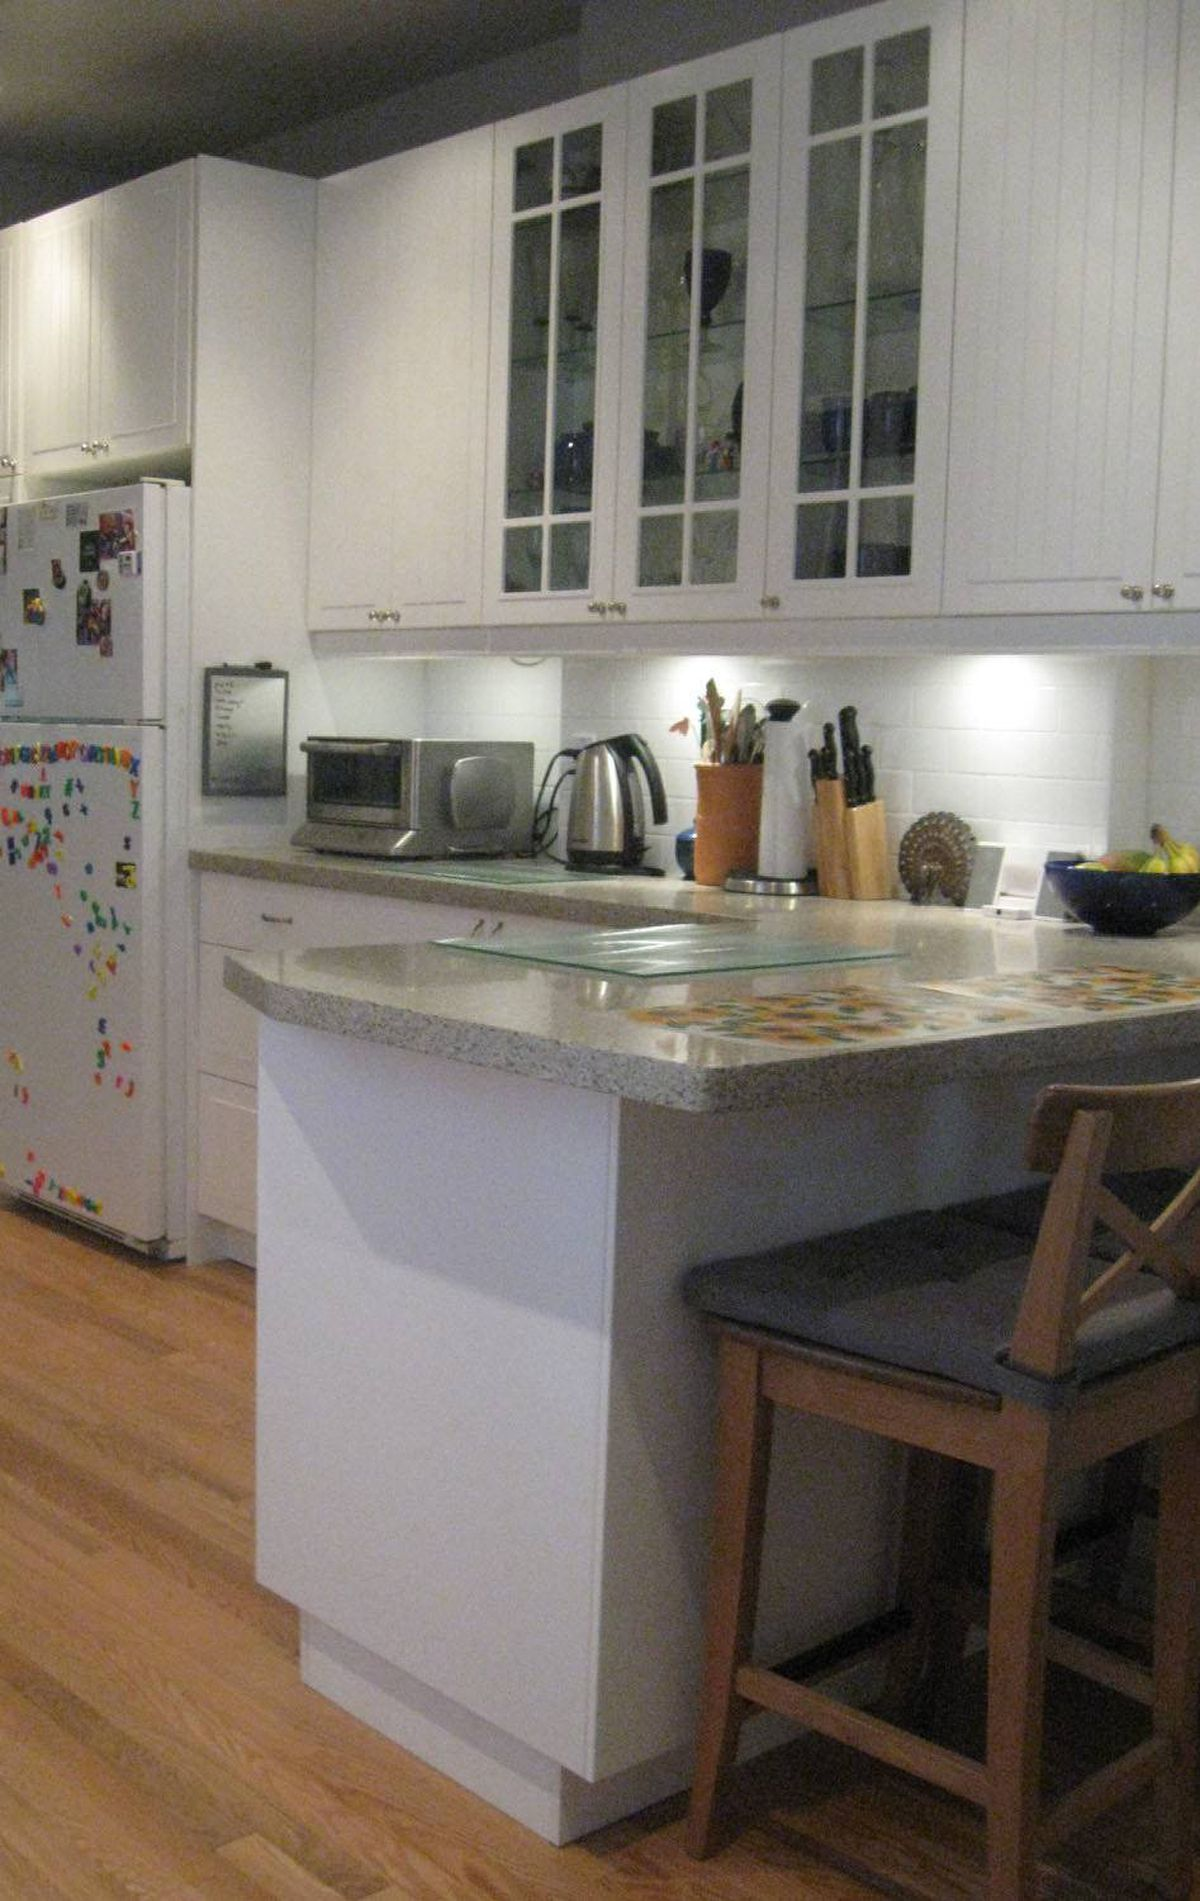 The south countertop provides lots of prep space.